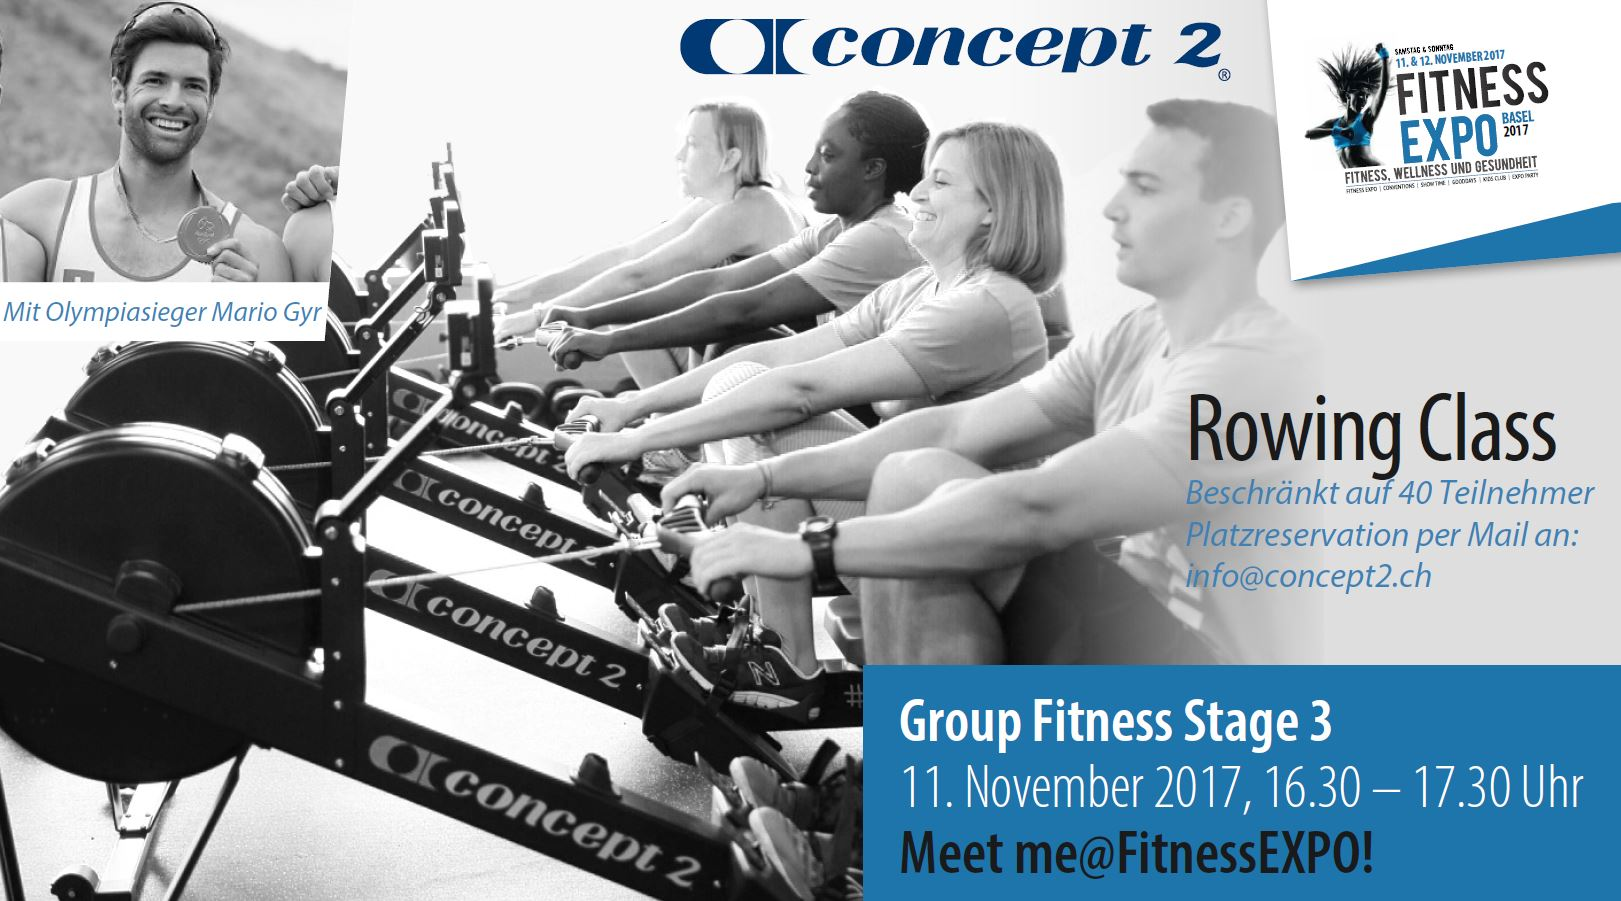 Fitness Expo concept2 Rowing class